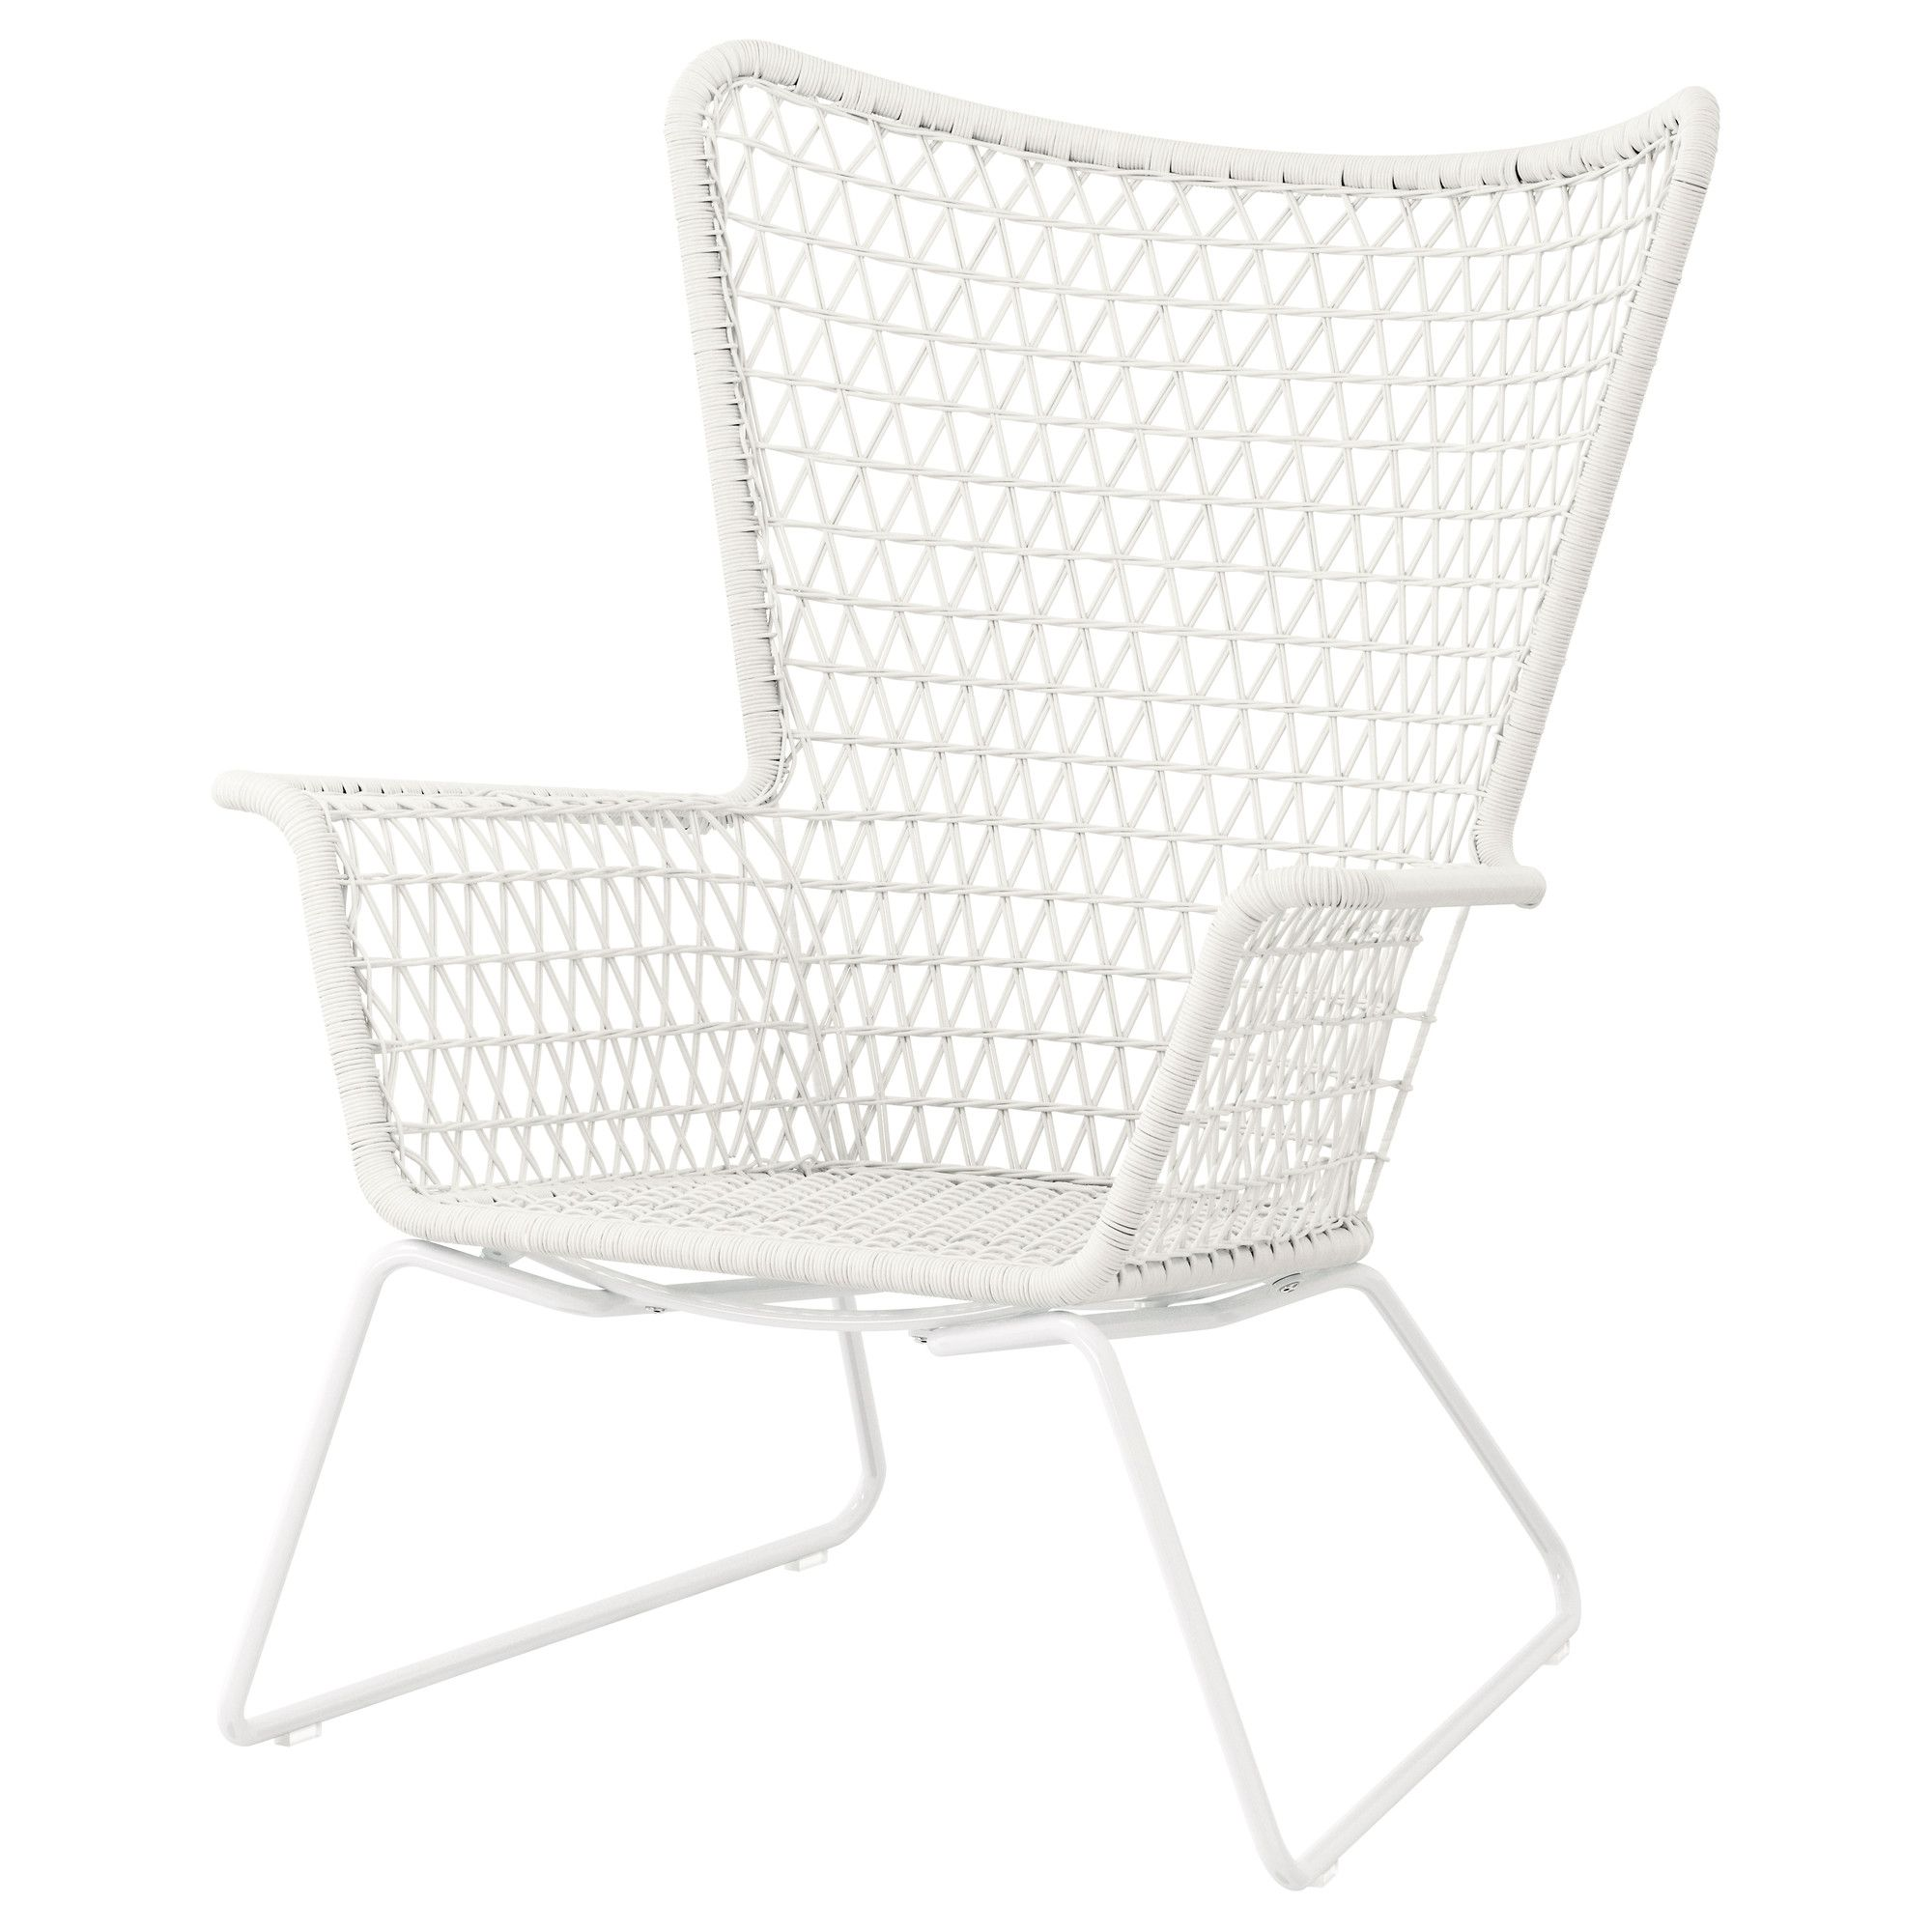 White Outside Chairs Black Chair Covers Spandex Hej Bei Ikea Osterreich Gardenlicious Pinterest Hogsten Armchair Patio Outdoor